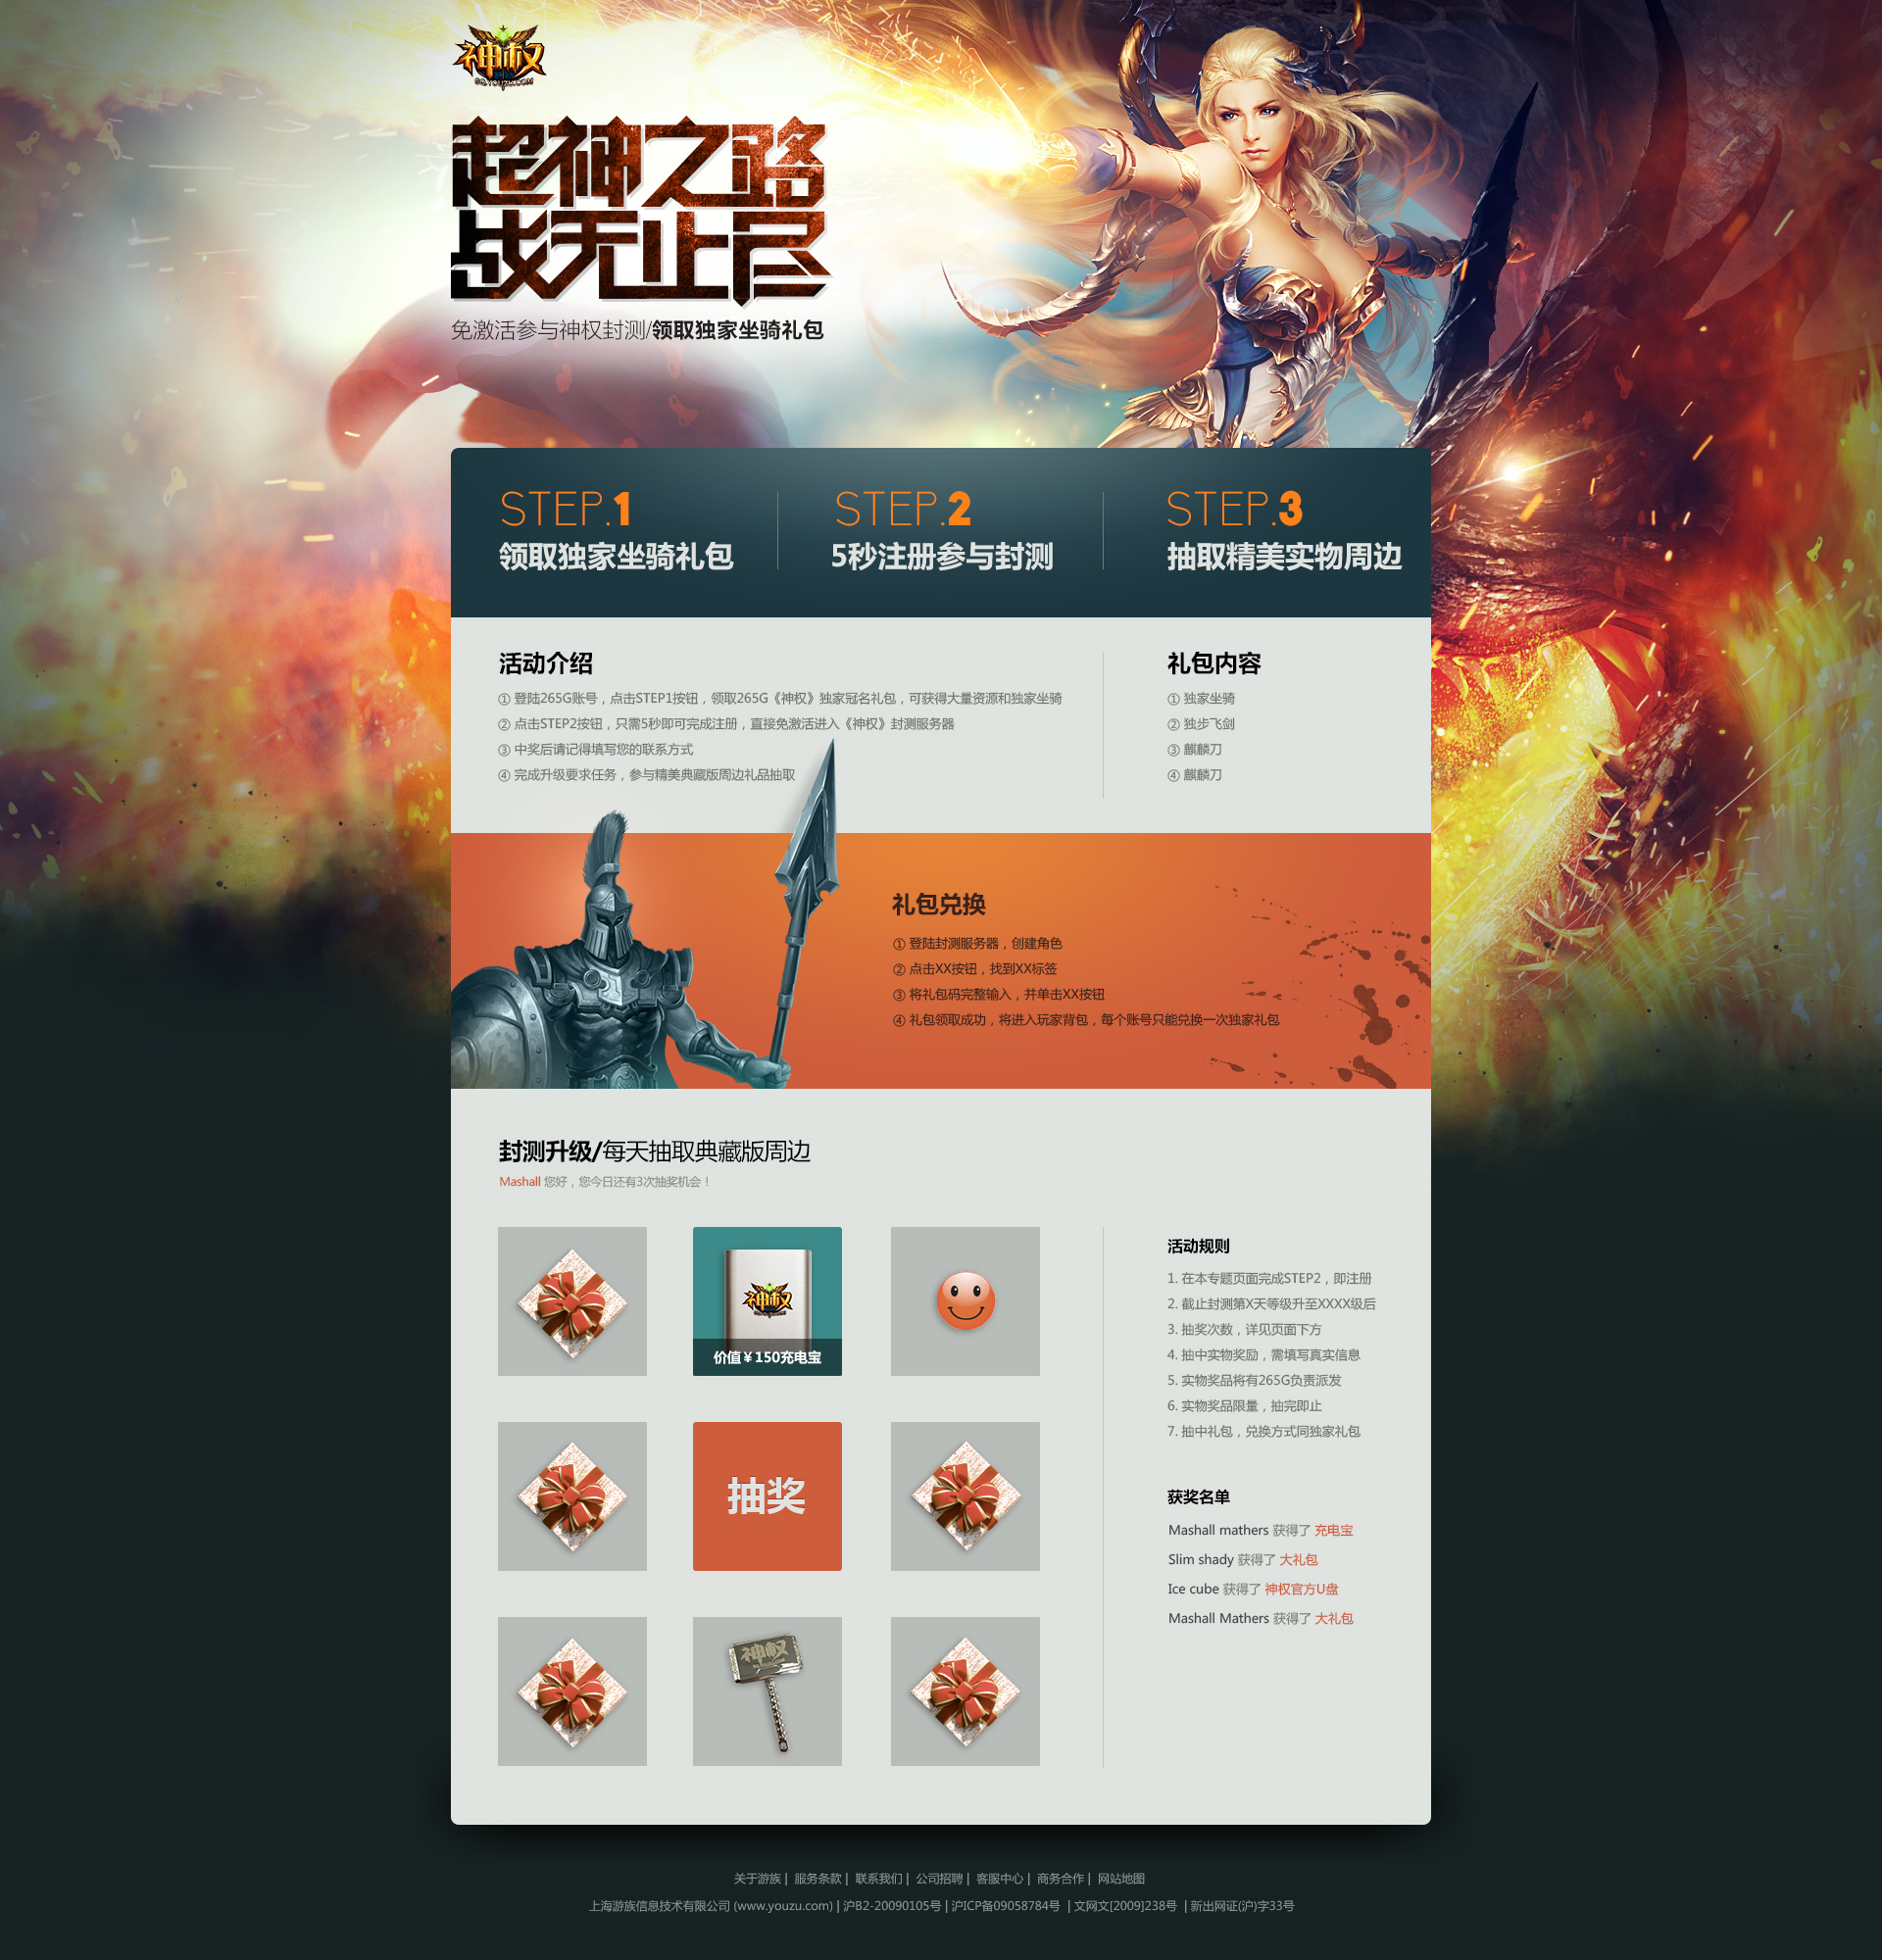 Event-Beta lottery by onejian